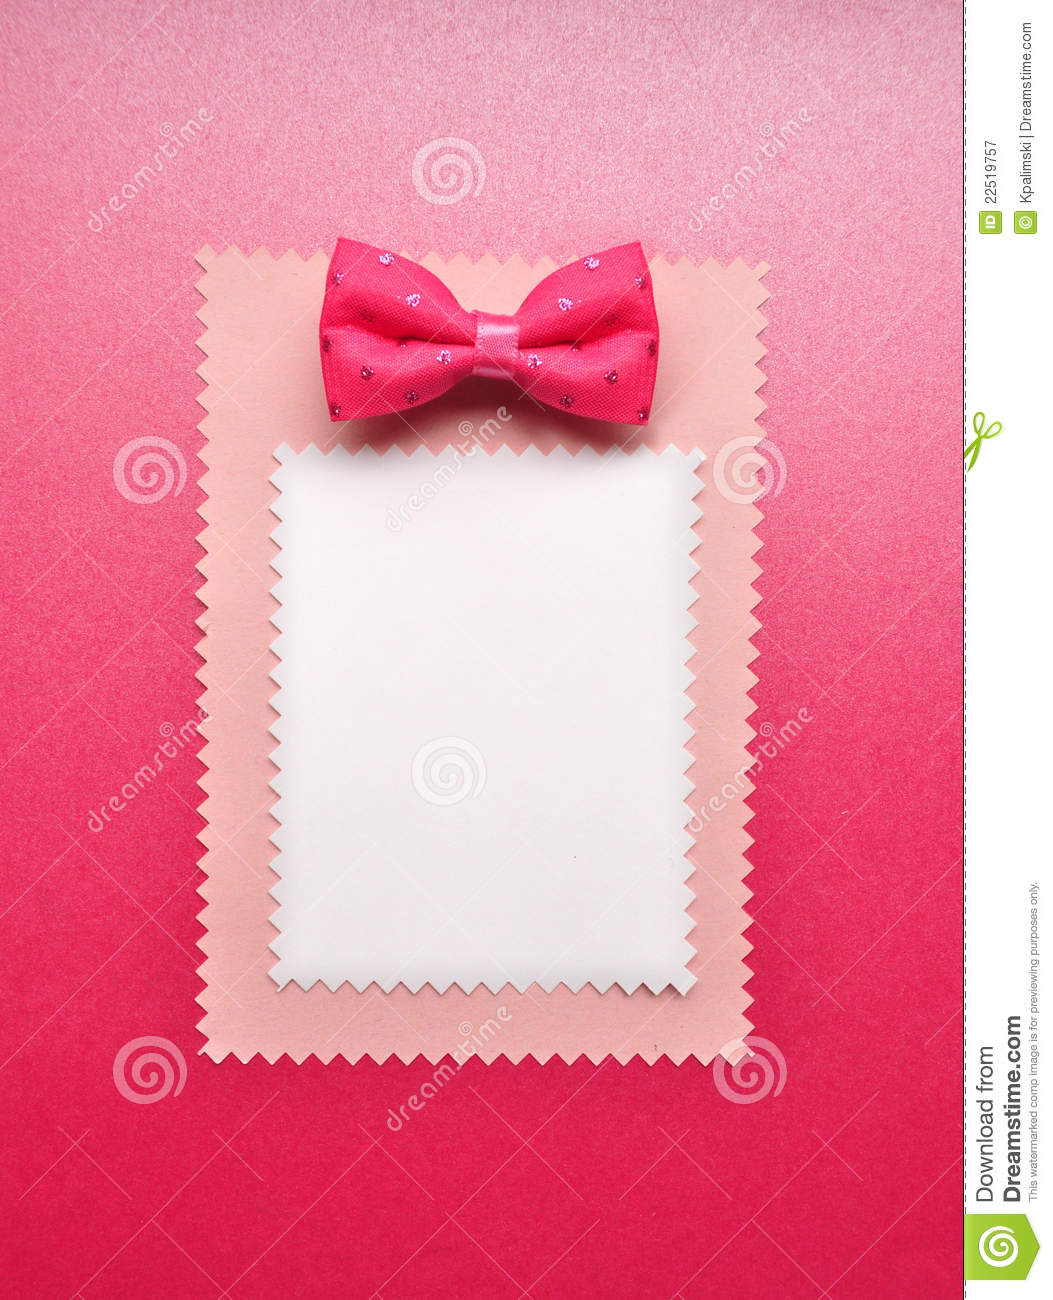 photo of empty card with bow royalty free stock photography